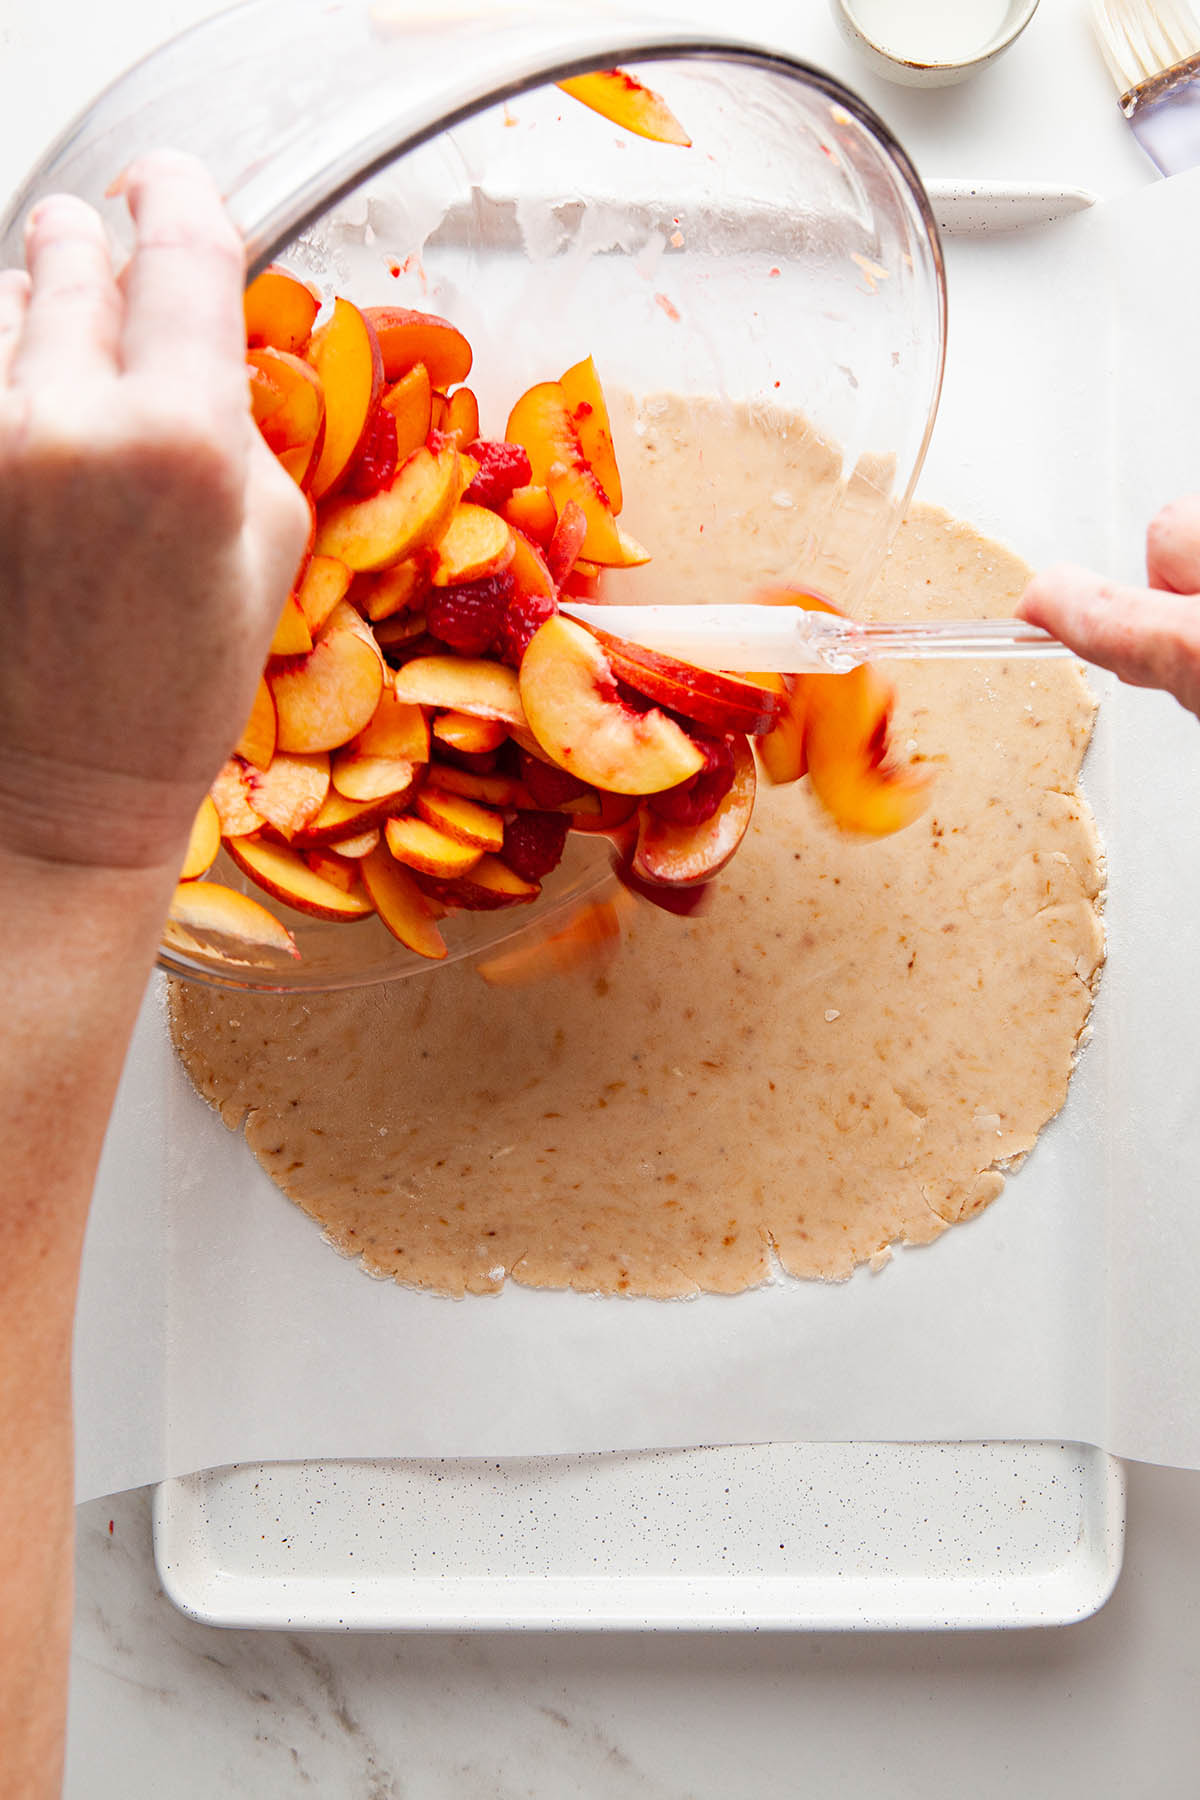 Peach filling being added to the middle of the galette.